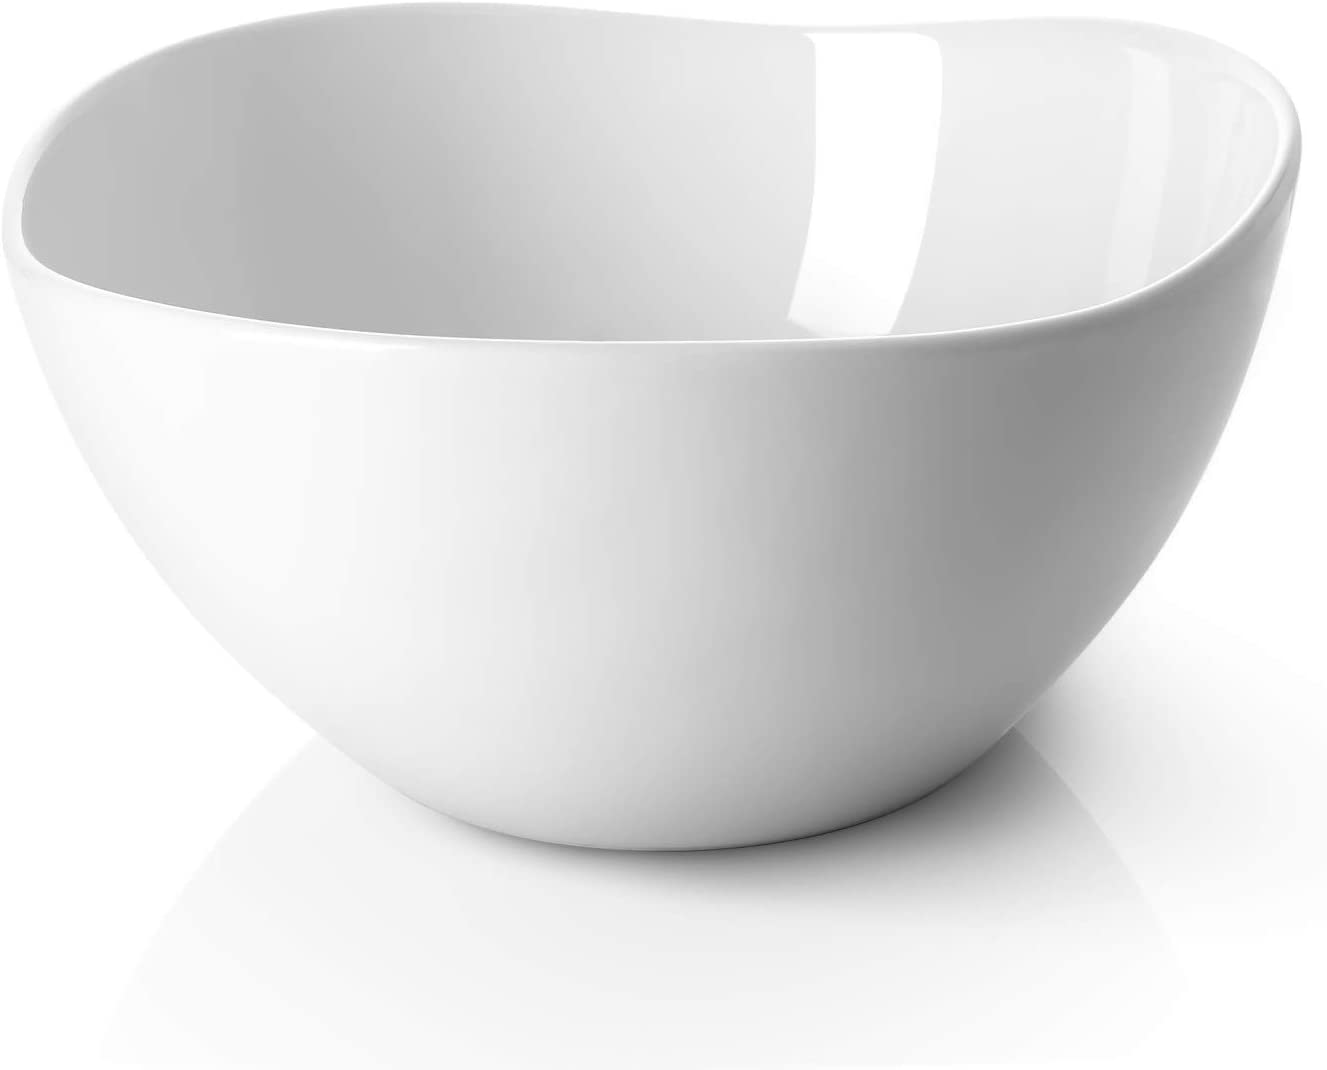 DOWAN Large Serving and Mixing Bowls, 3 Quarts Porcelain Bowl for Salad, Pasta, Fruit, Set of 2, White